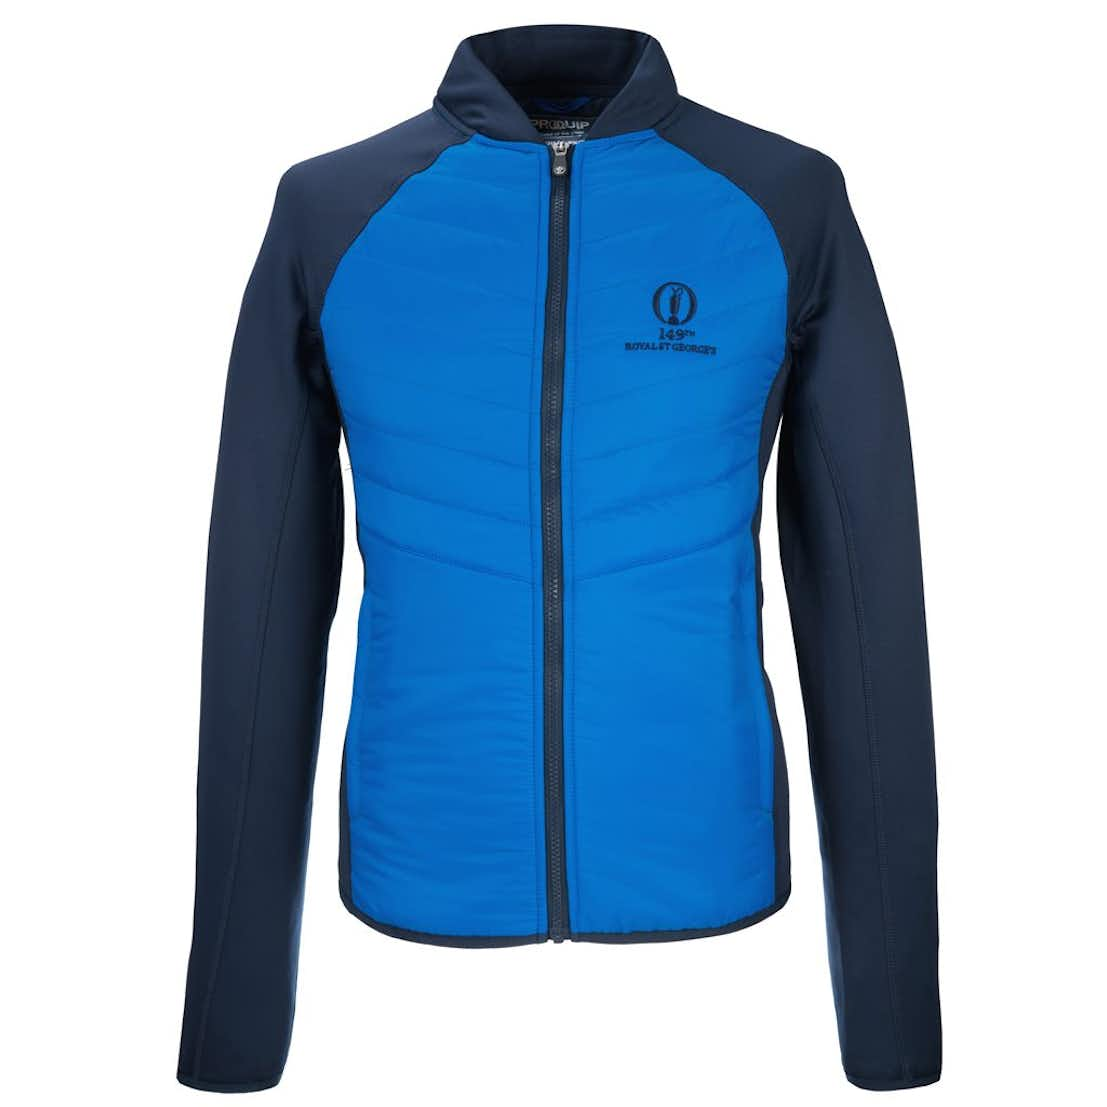 149th Royal St George's ProQuip Jacket - Blue